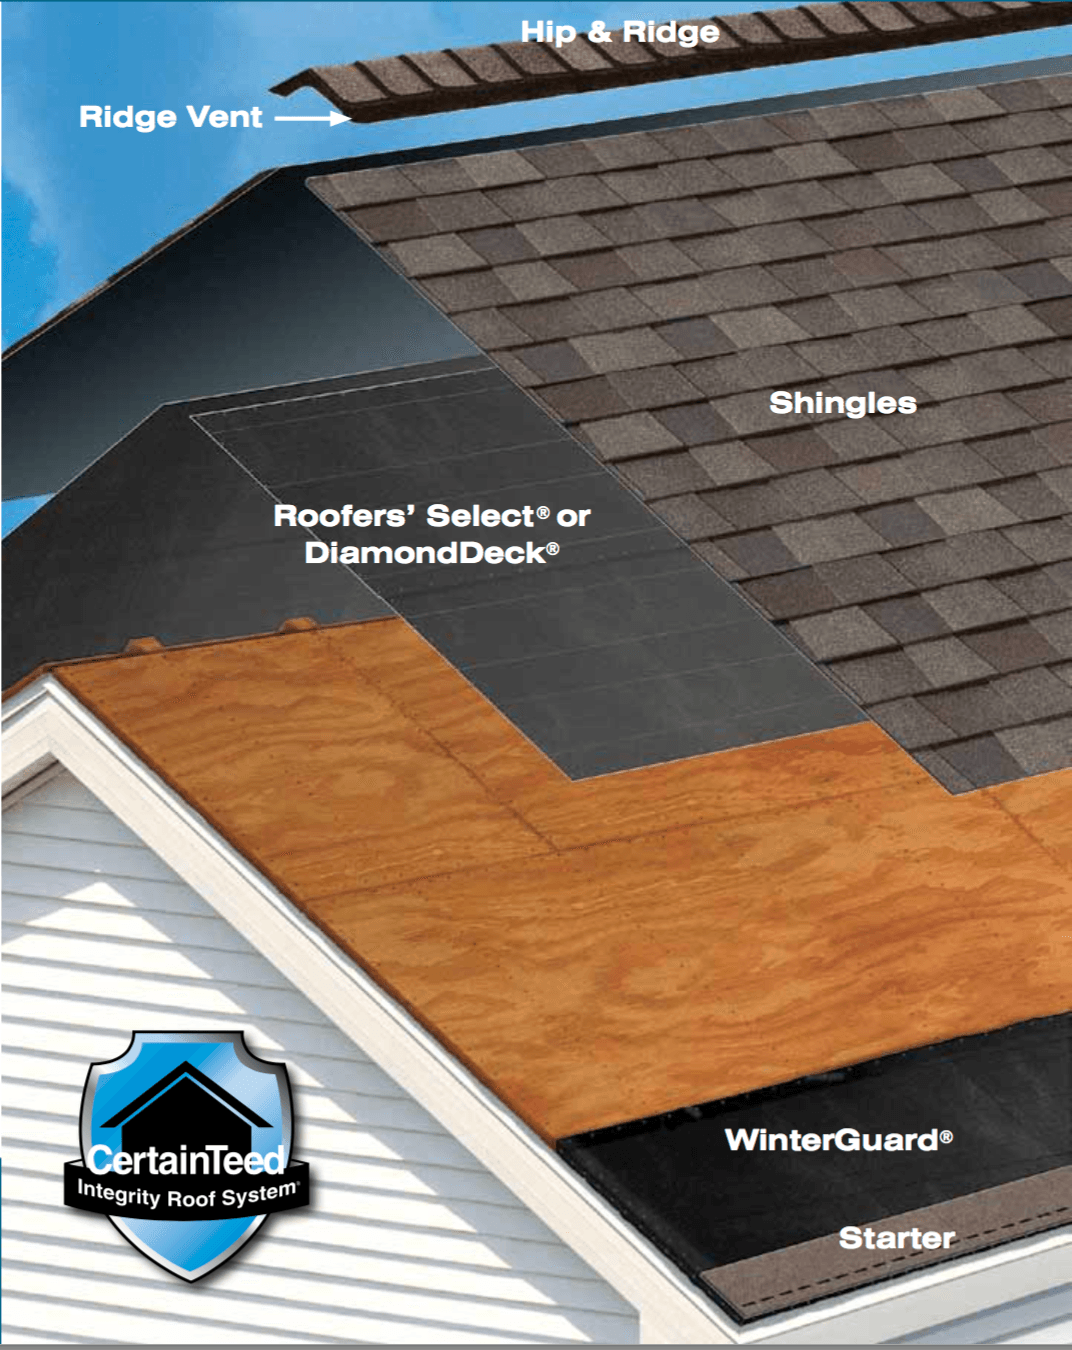 integrity roof system